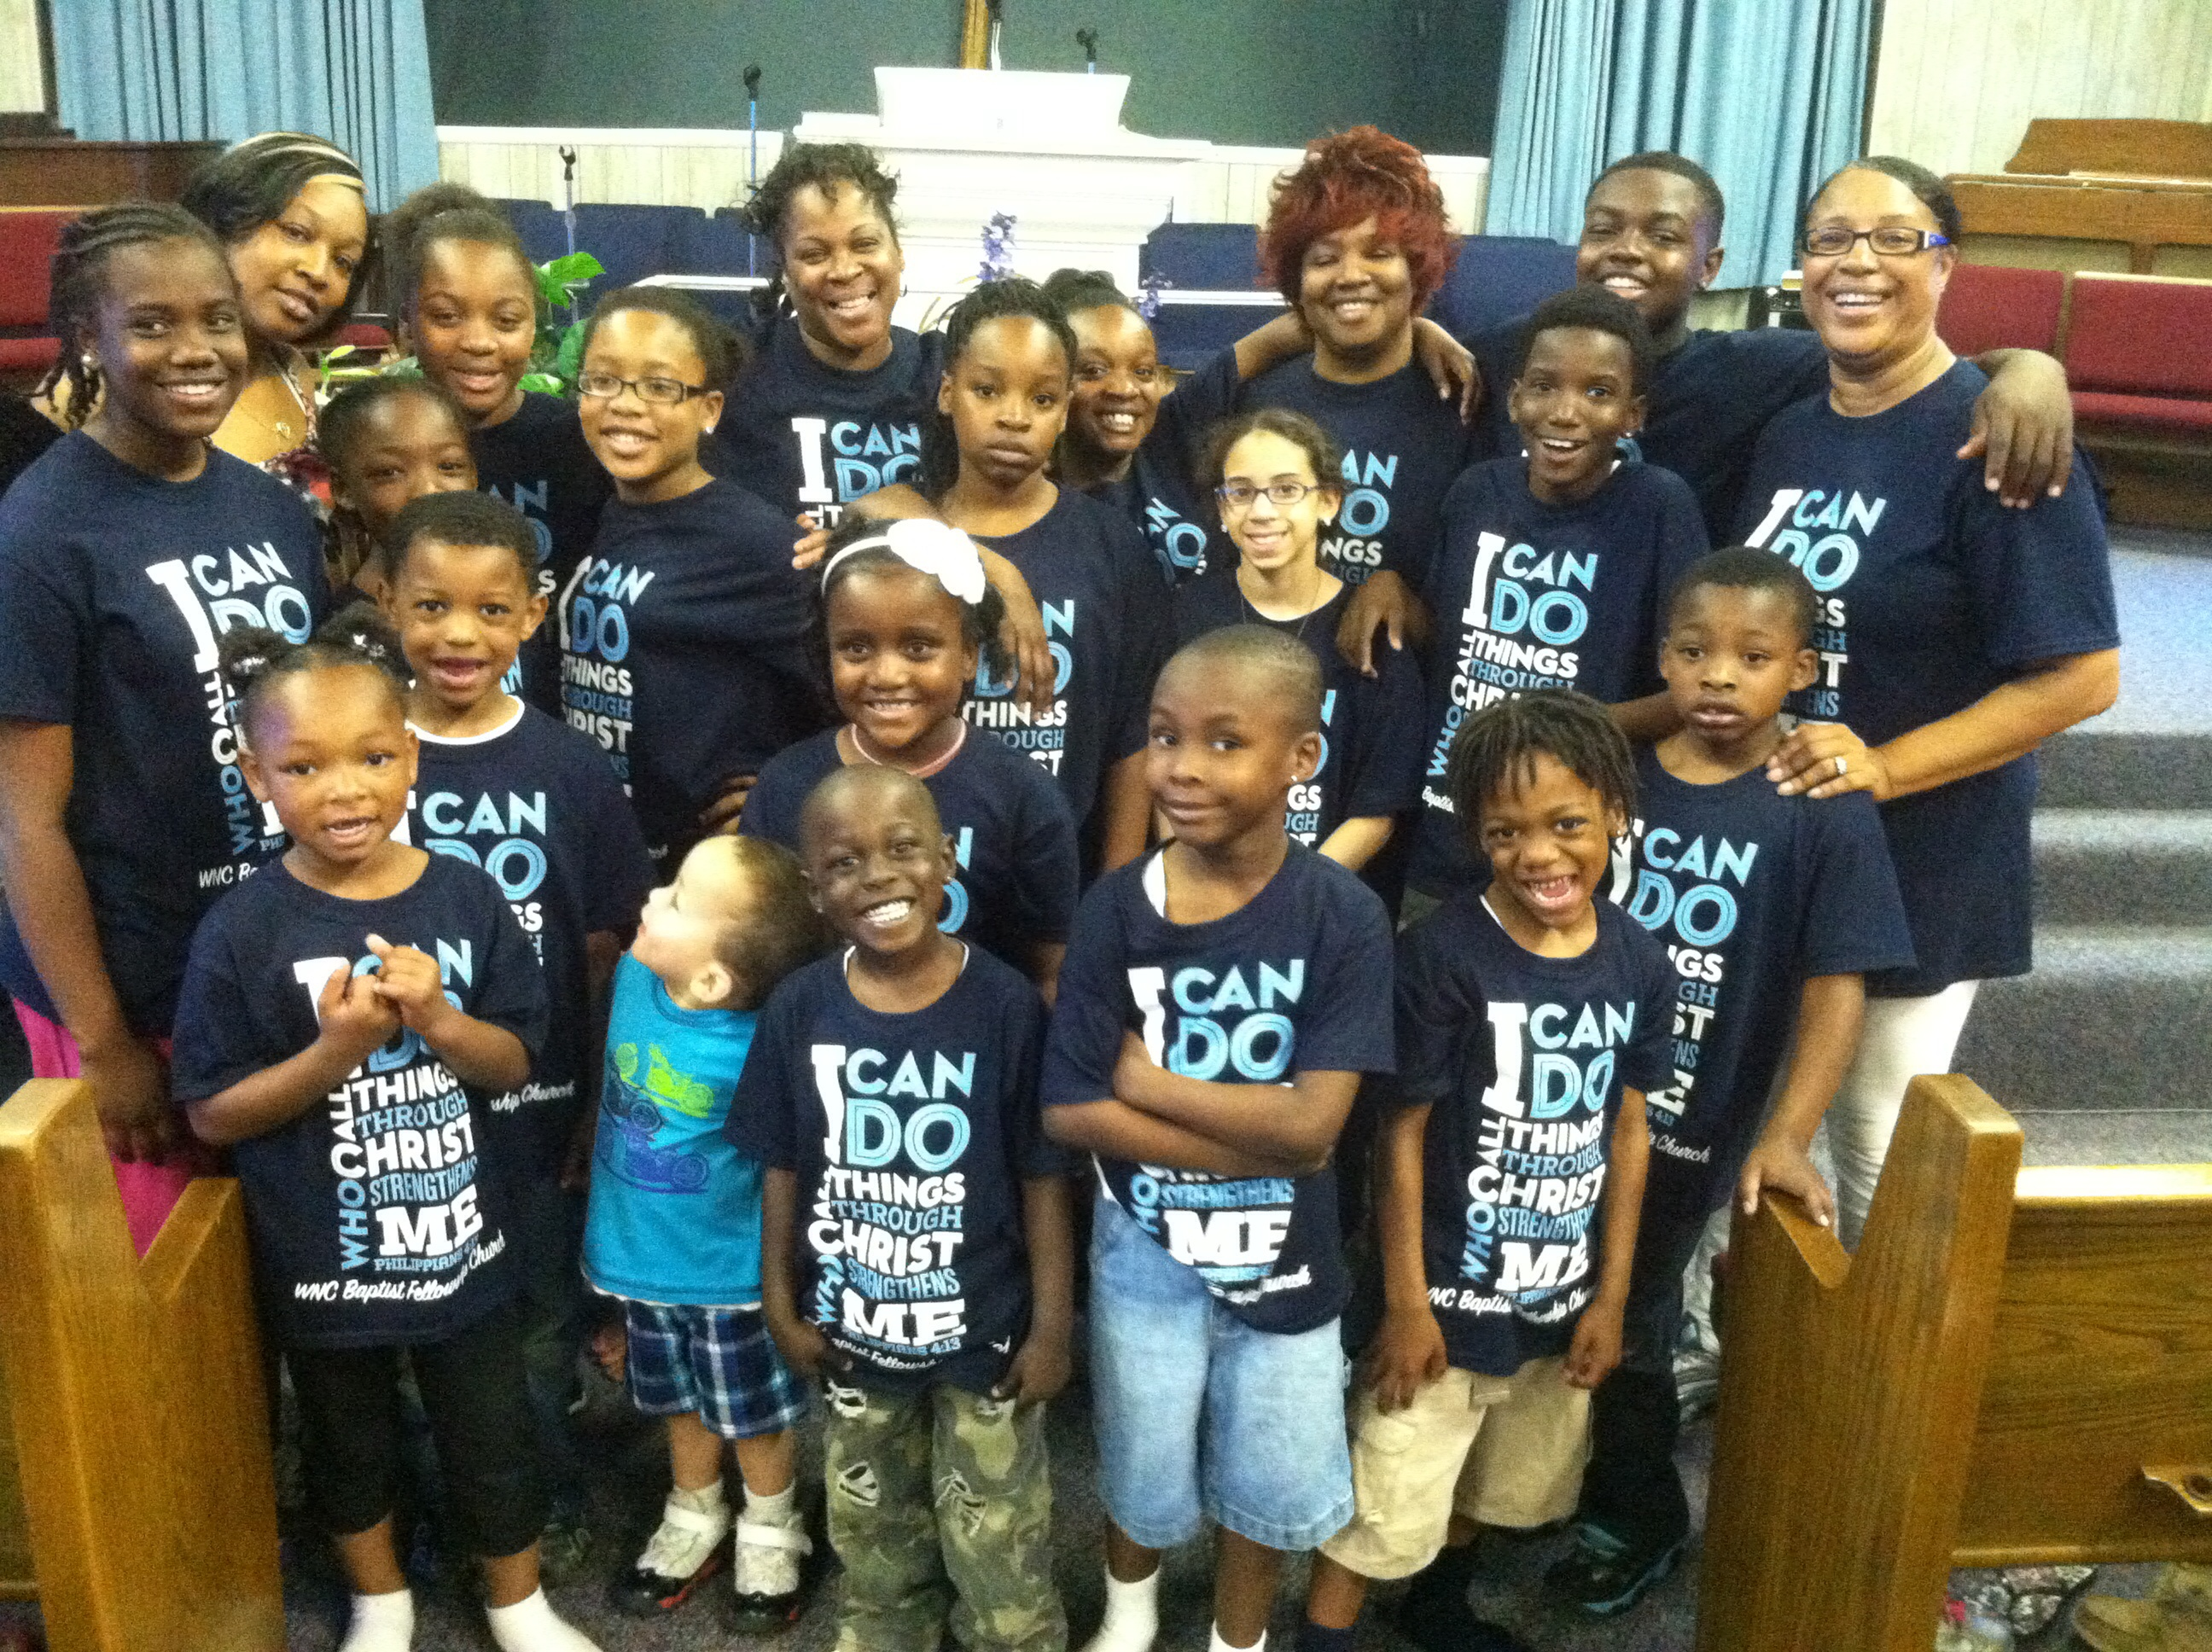 Design your own t-shirt for toddlers - Youth Explosion Wnc Baptist Fellowship Church T Shirt Photo